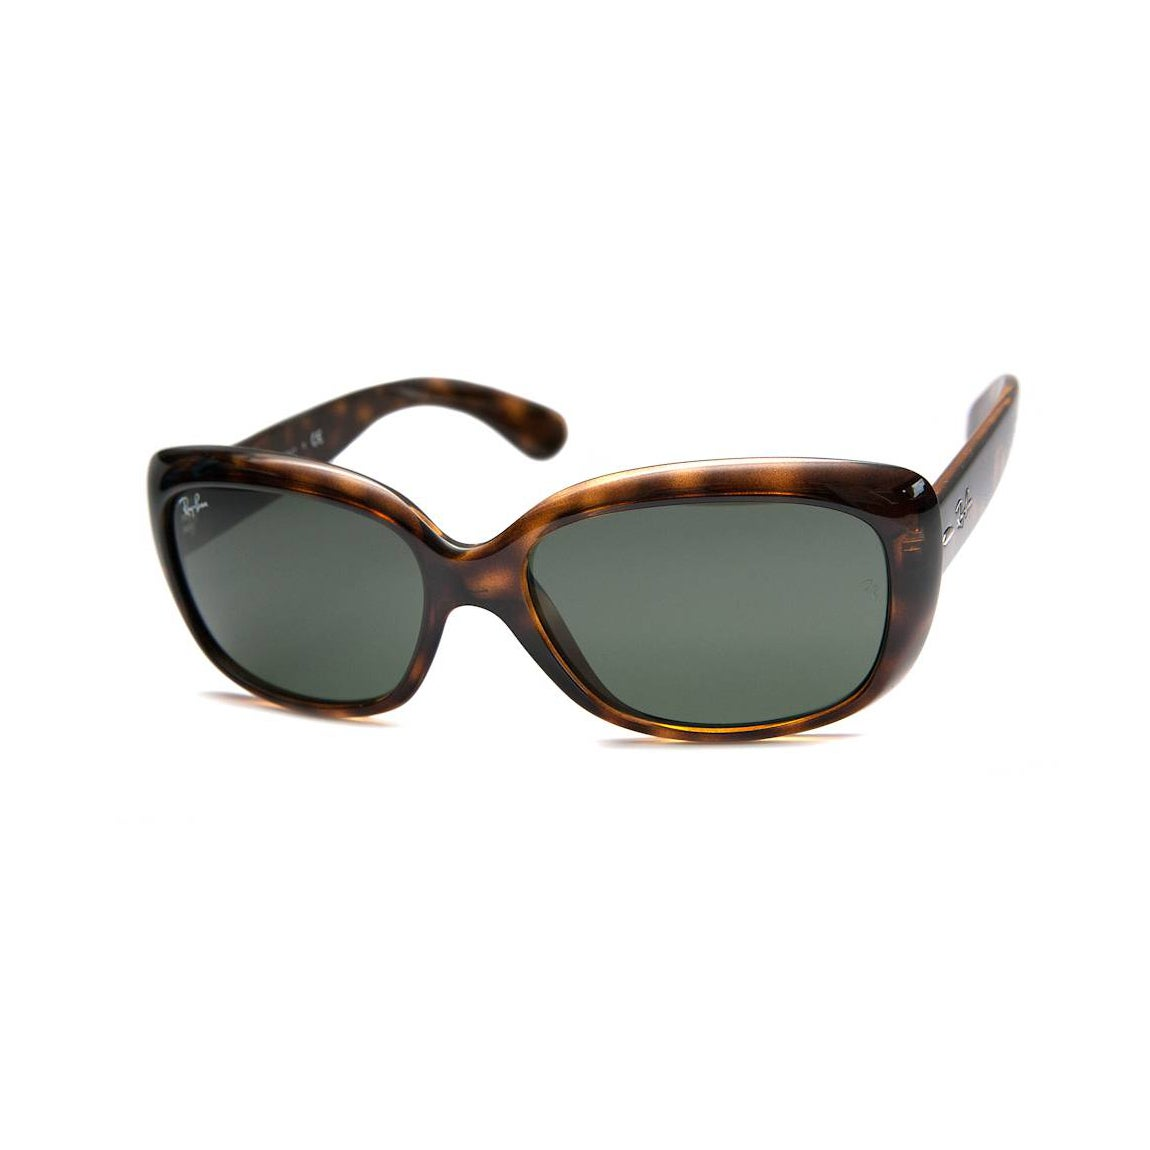 3ffd6dcd12c Shop Ray-Ban G-15XLT  Jackie Oh  Sunglasses - 58mm - Tortoise - Large -  Free Shipping Today - Overstock - 10161521